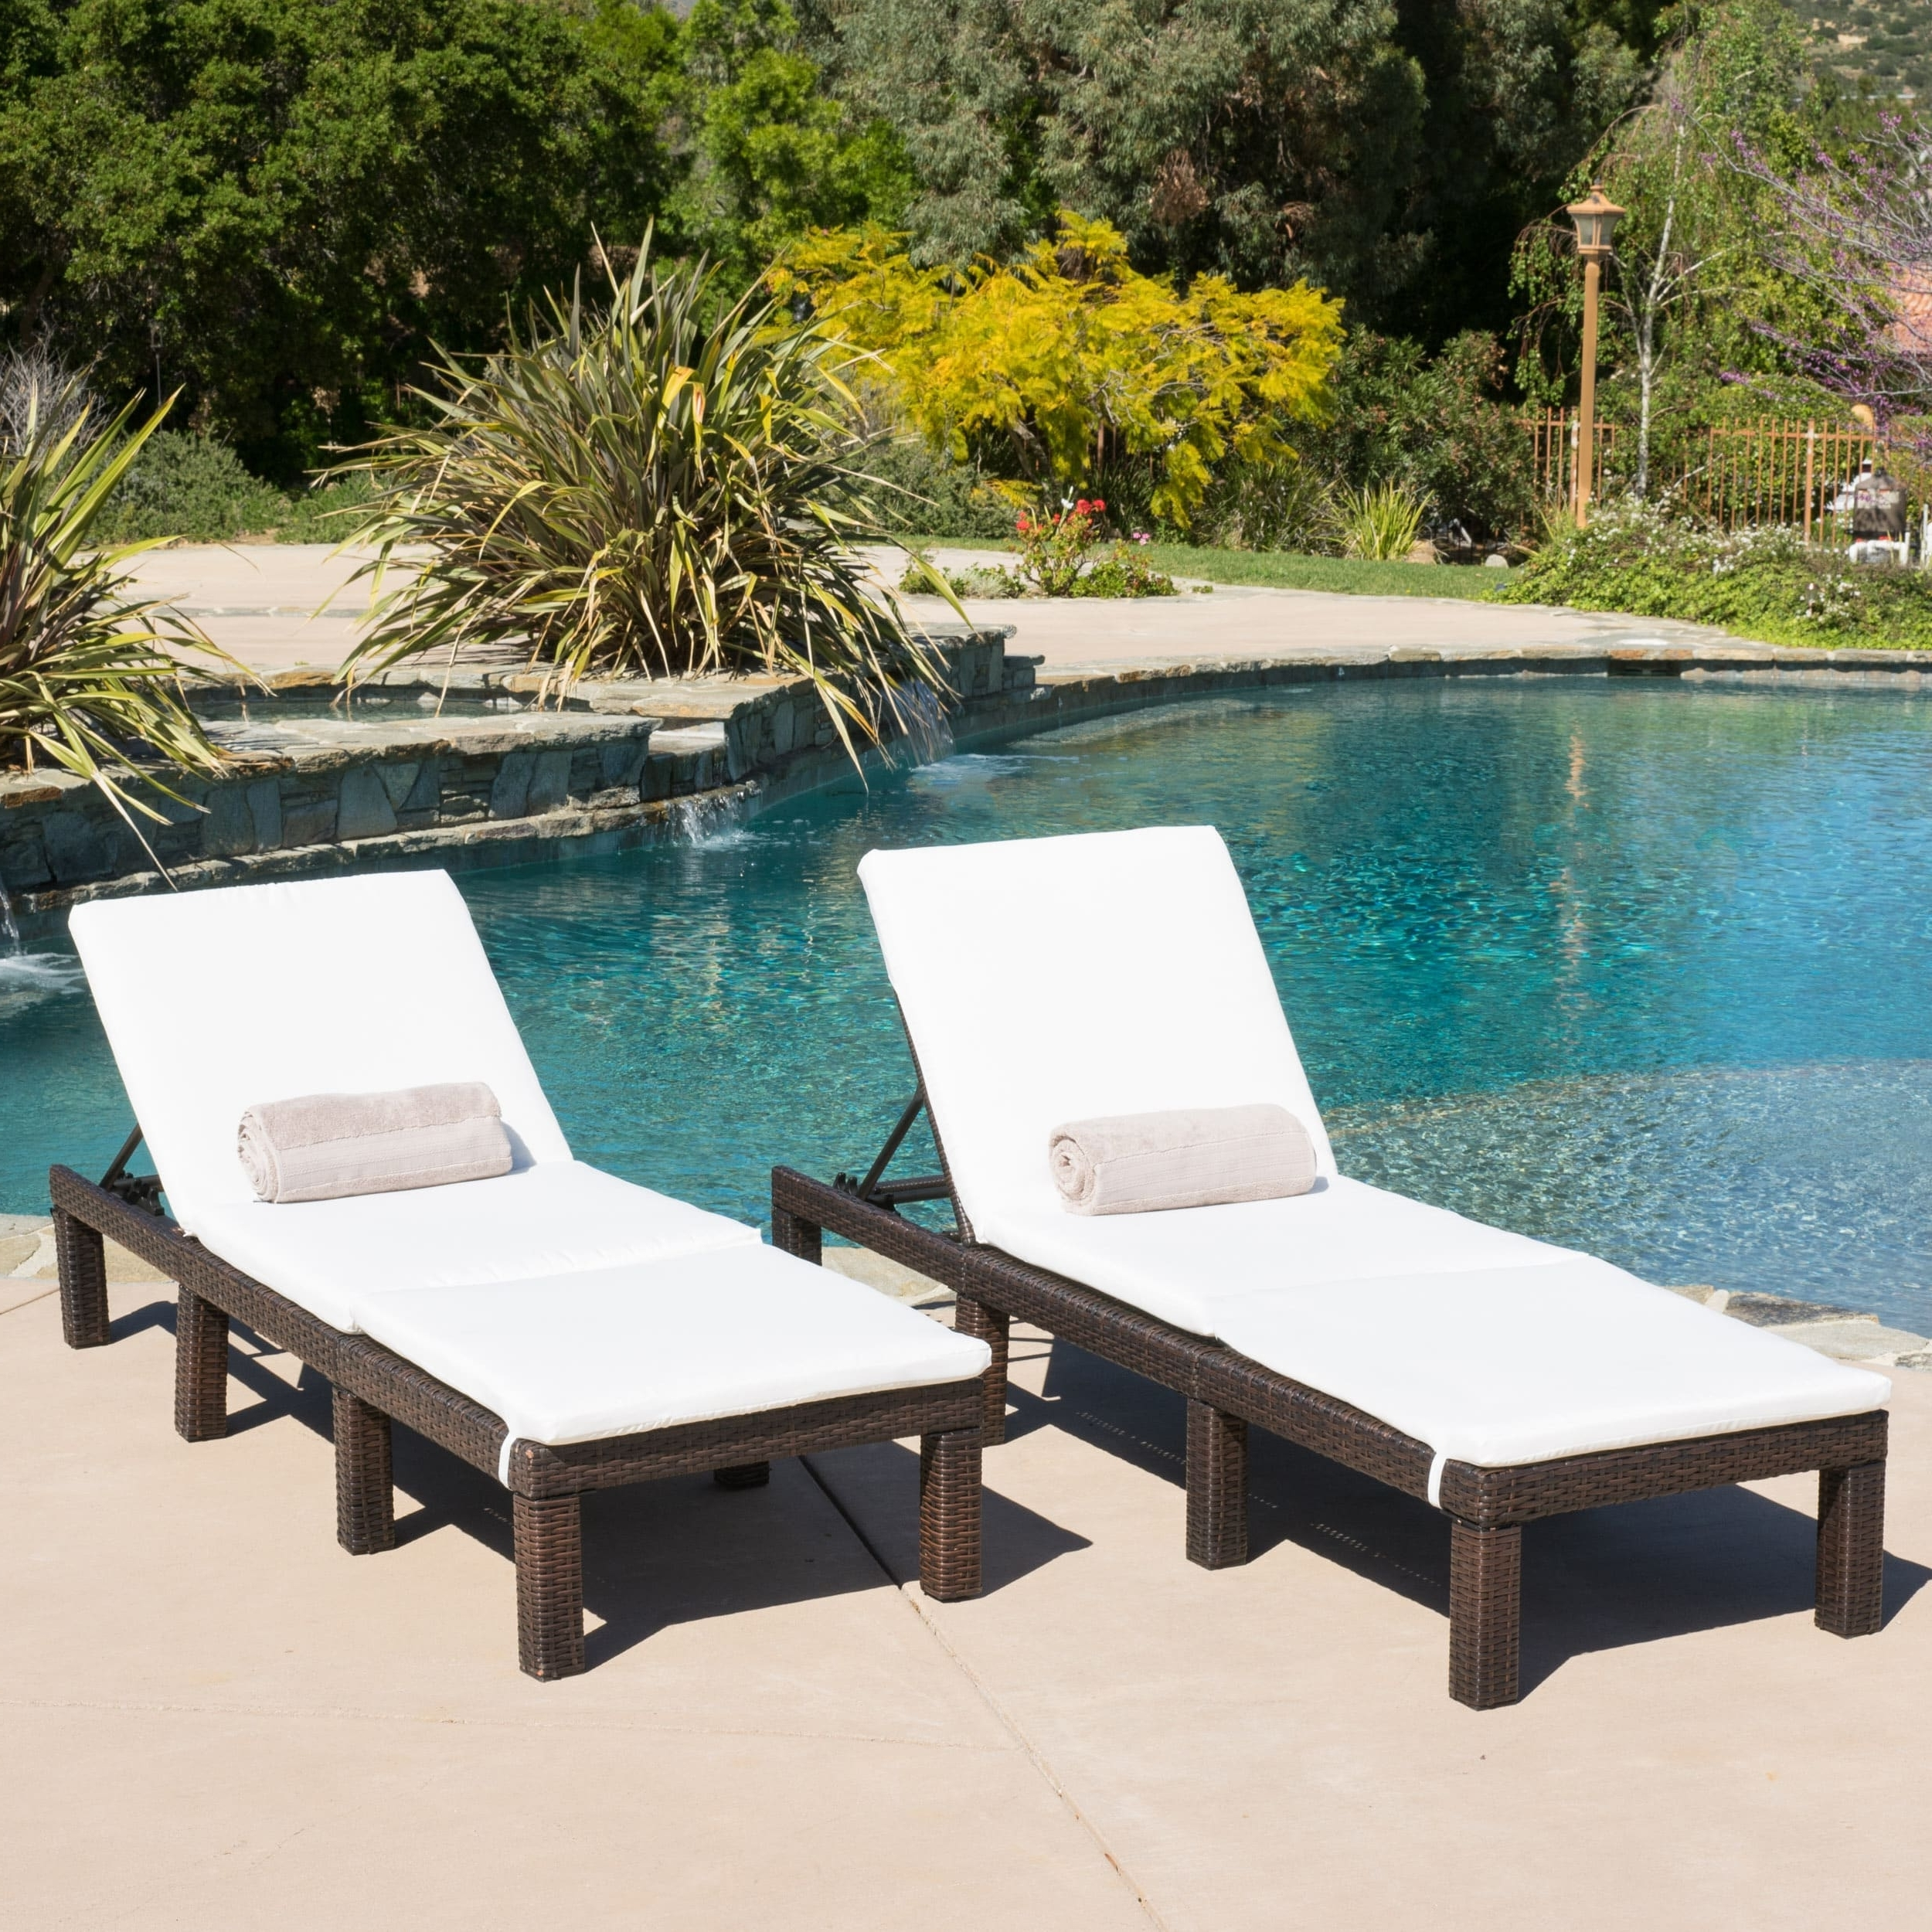 Most Recent Jamaica Outdoor Chaise Lounge With Cushion (Set Of 2) With Regard To Outdoor Chaise Lounges (View 8 of 15)